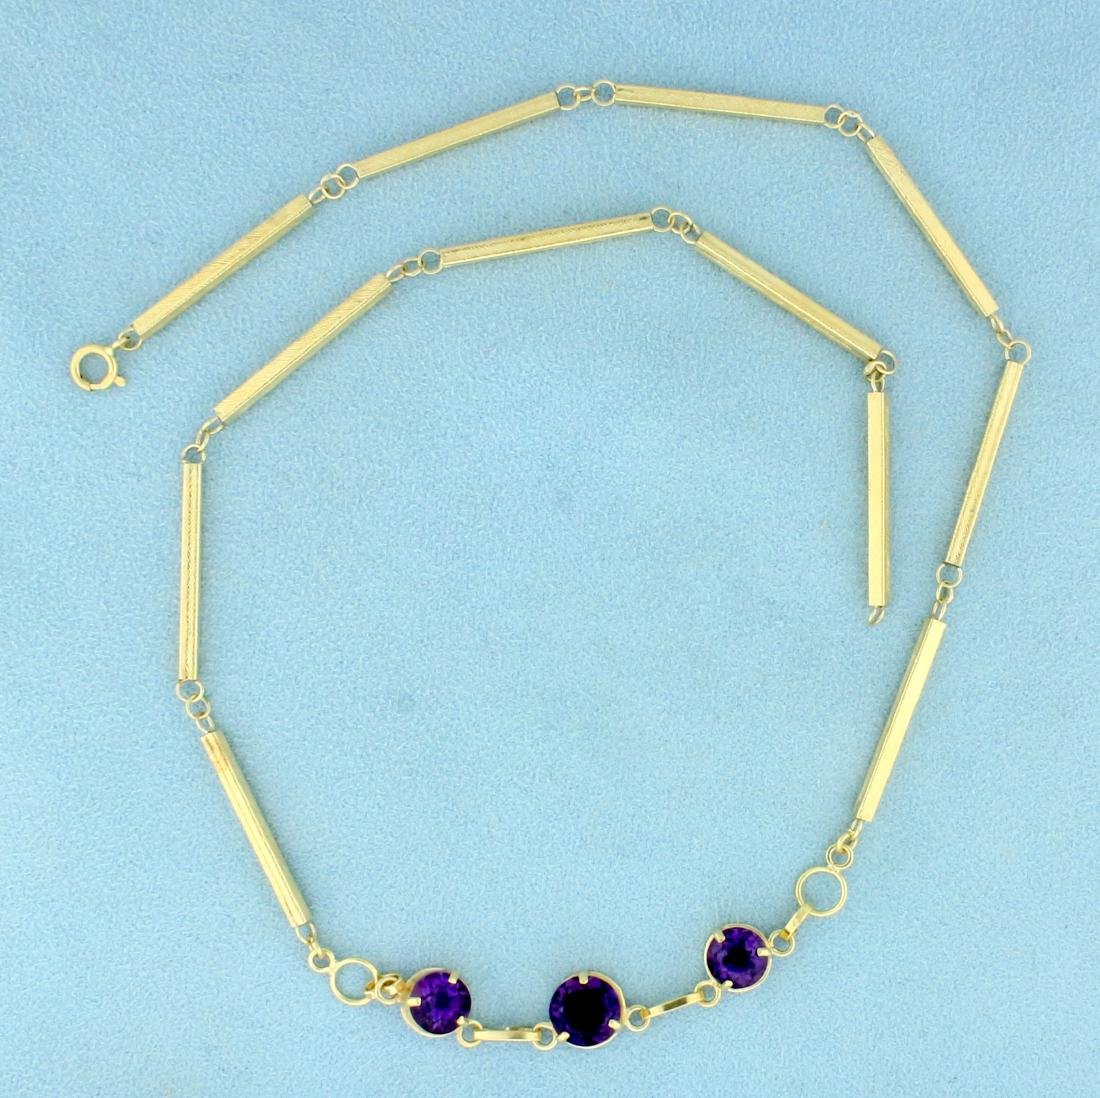 Designer 3 Stone Amethyst Necklace in 14K Yellow Gold